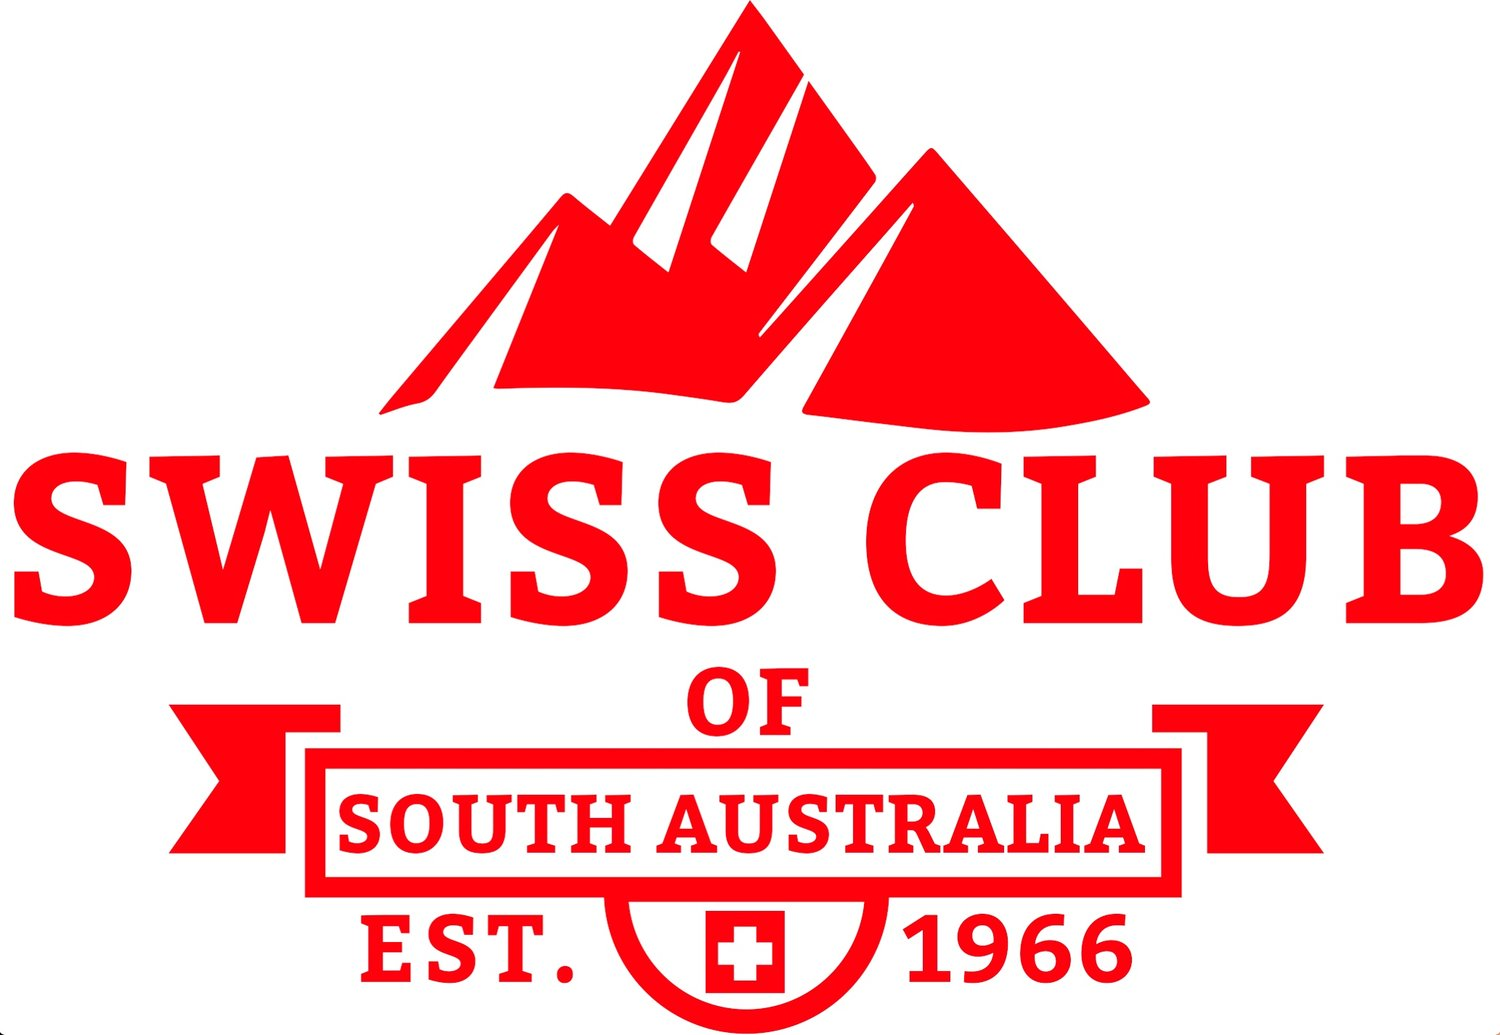 Swiss Club of South Australia Inc